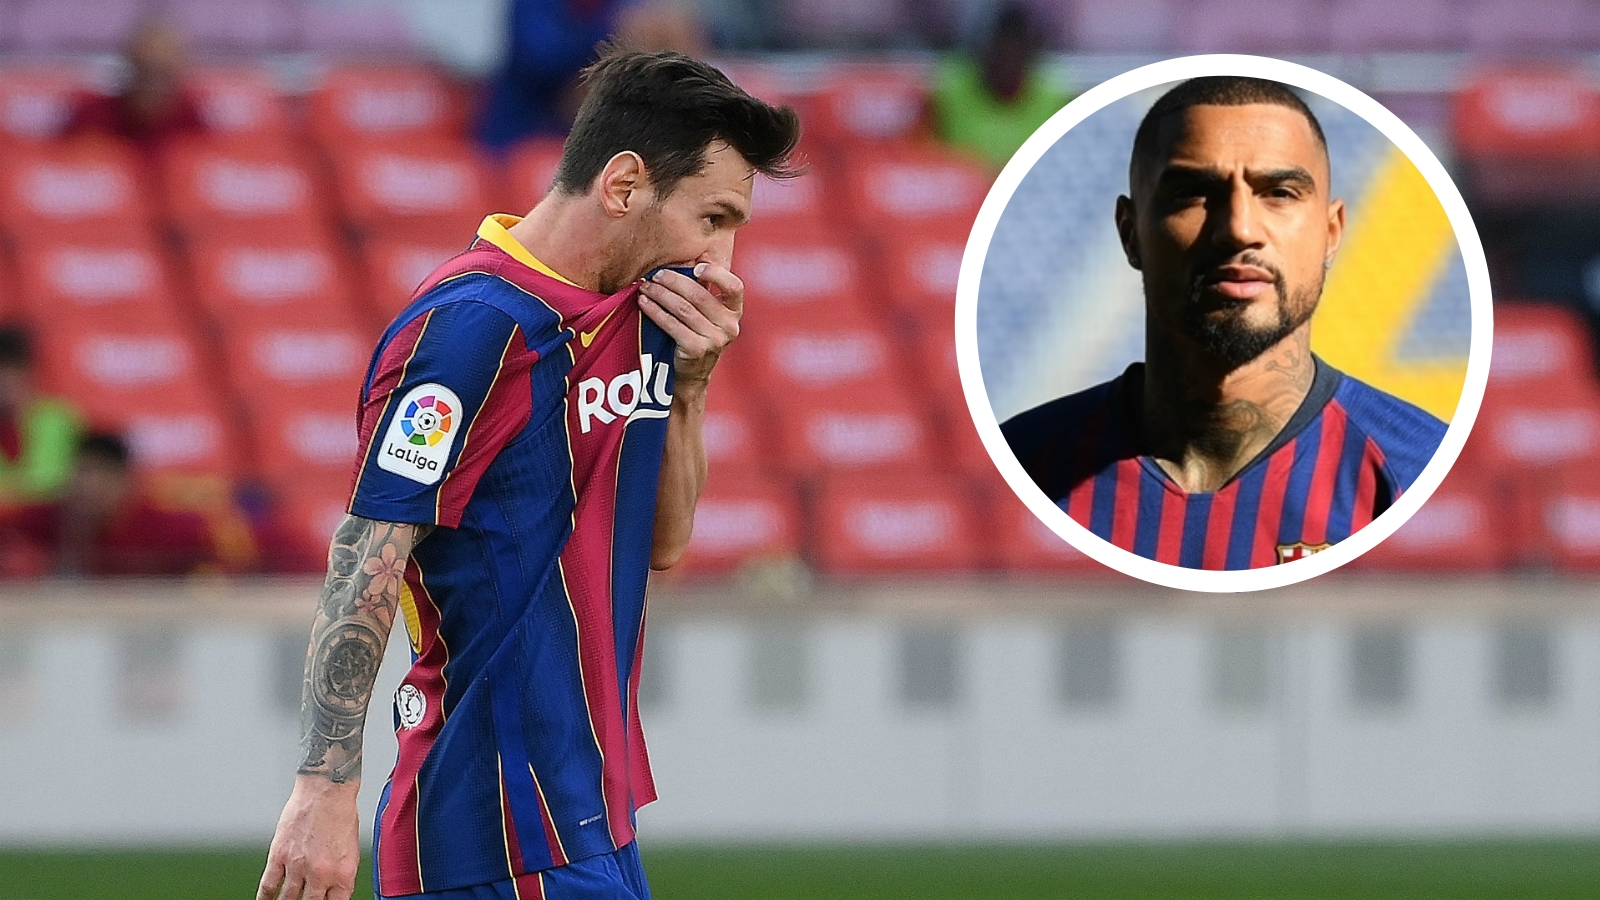 'Messi made me want to quit football!' - Ronaldo is great but Barcelona star is 'something else,' says Boateng